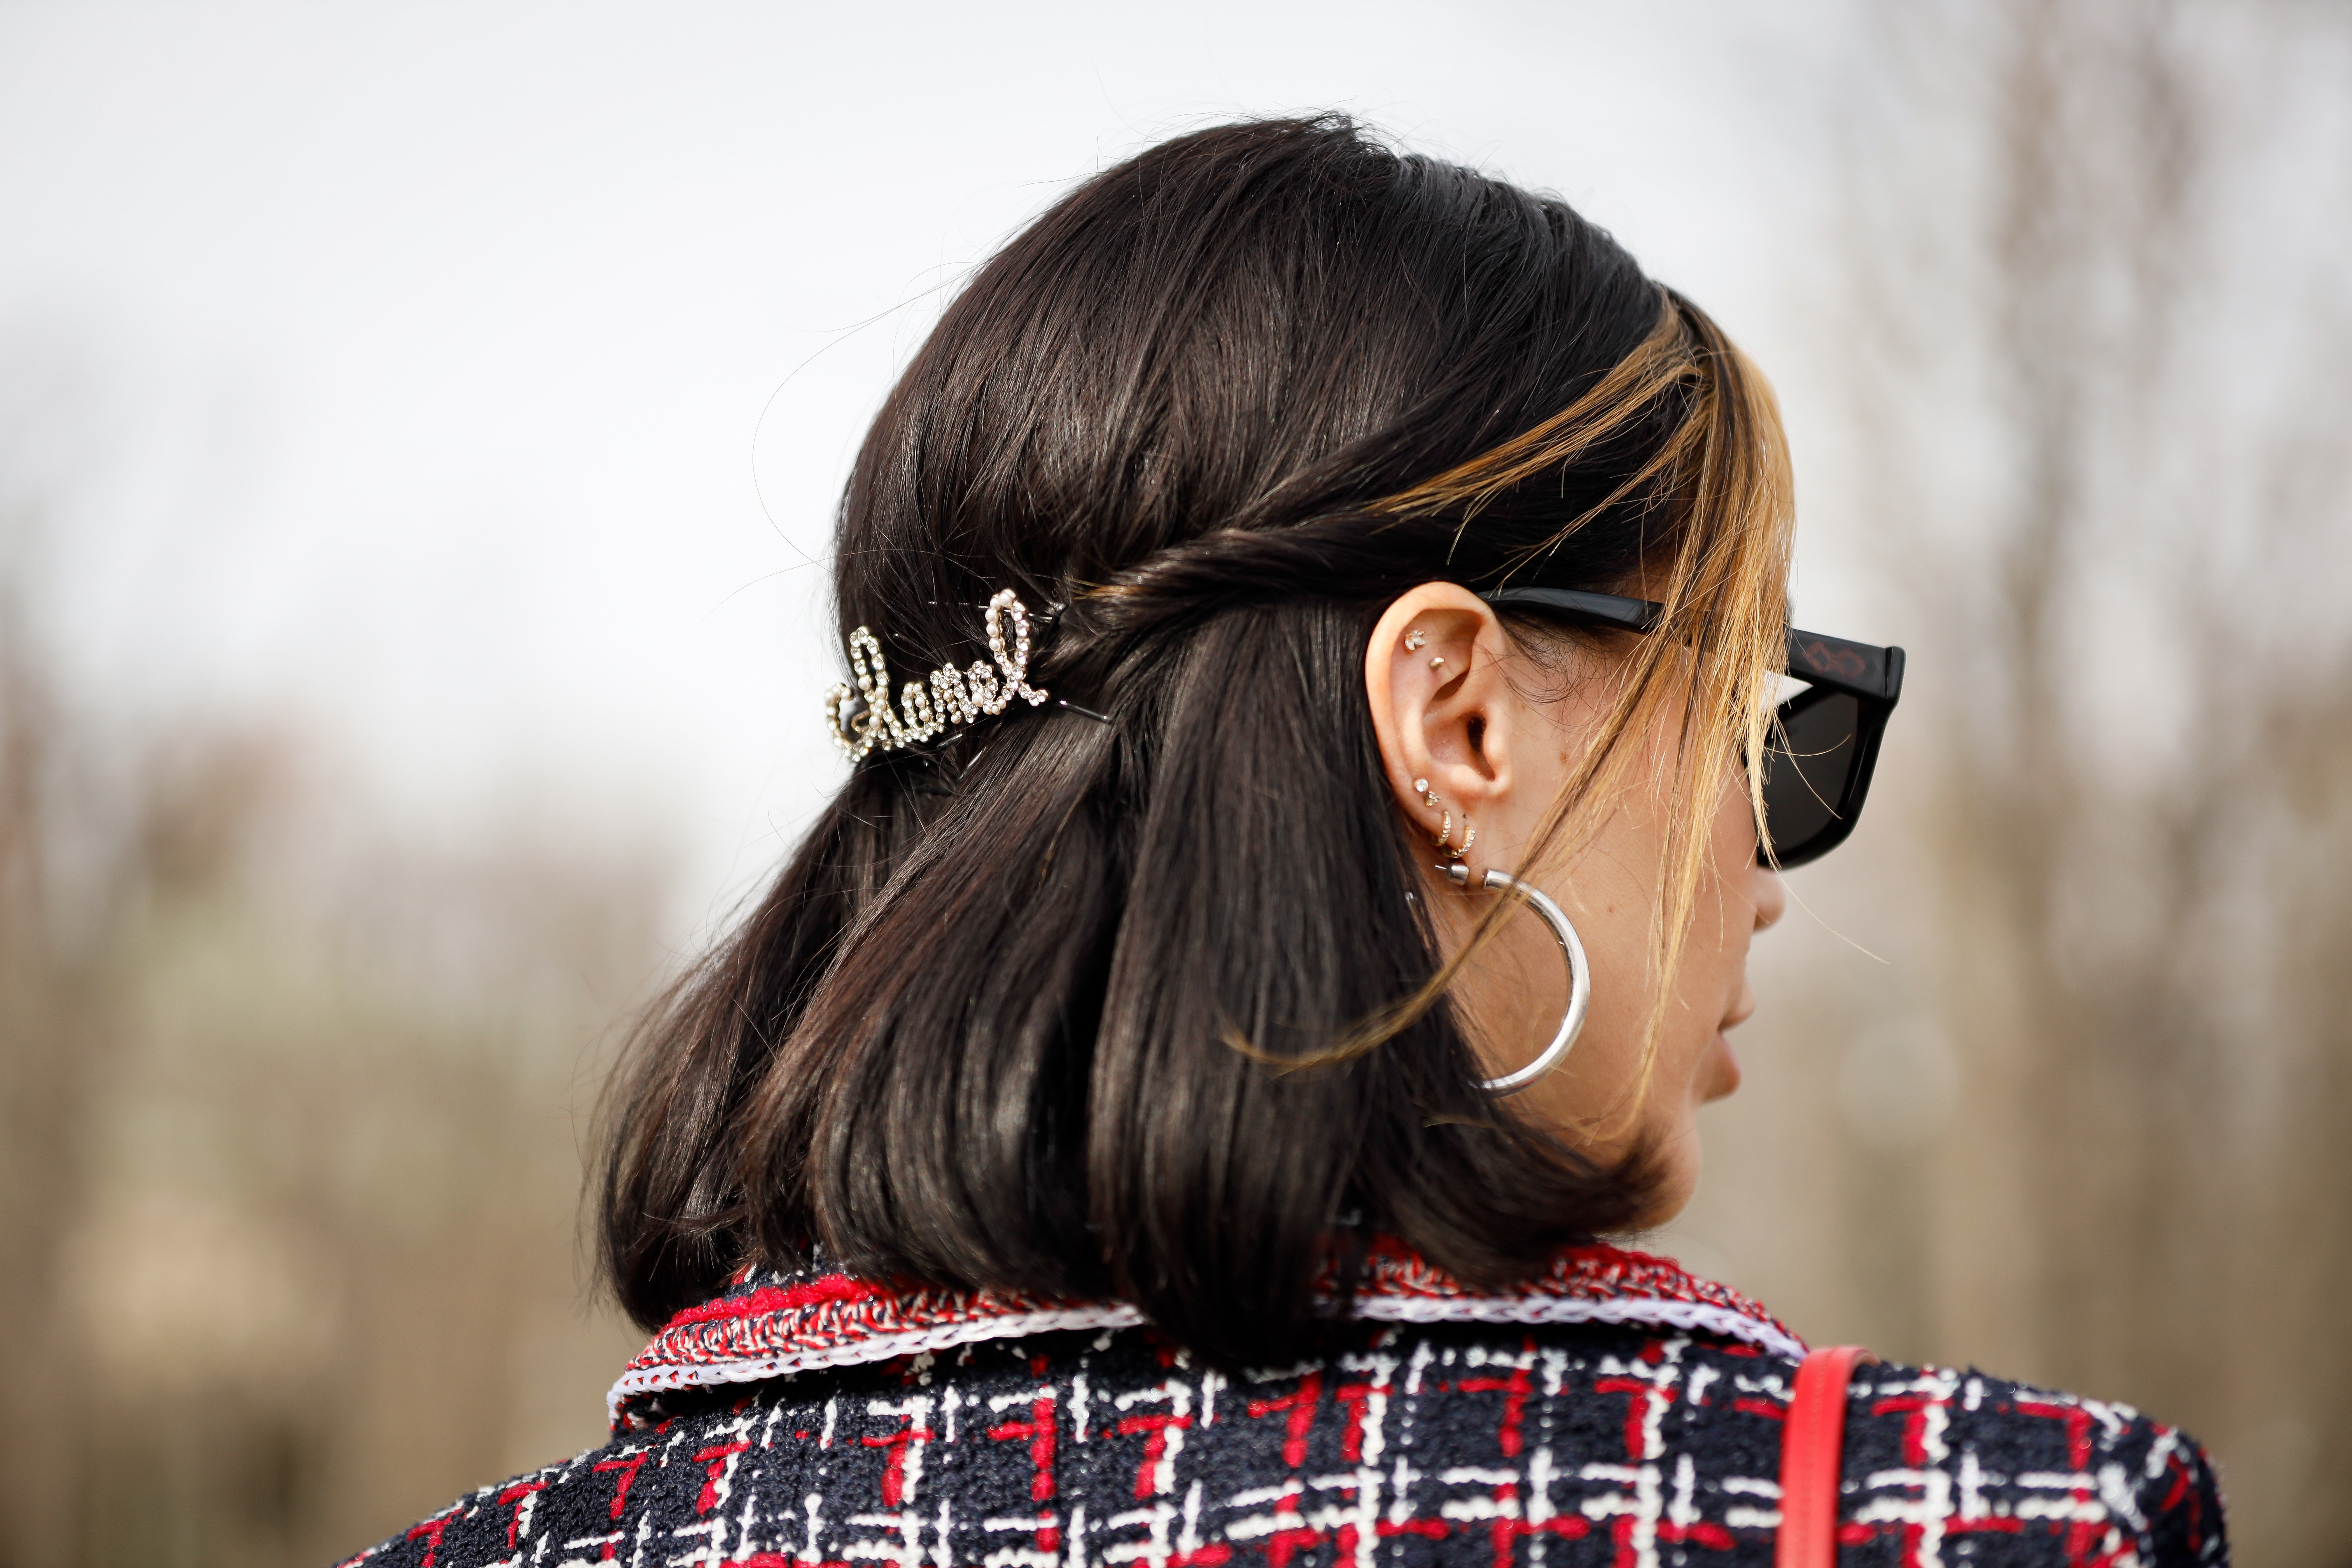 13 Cool Cartilage Earrings & How To Switch Them Out Safely